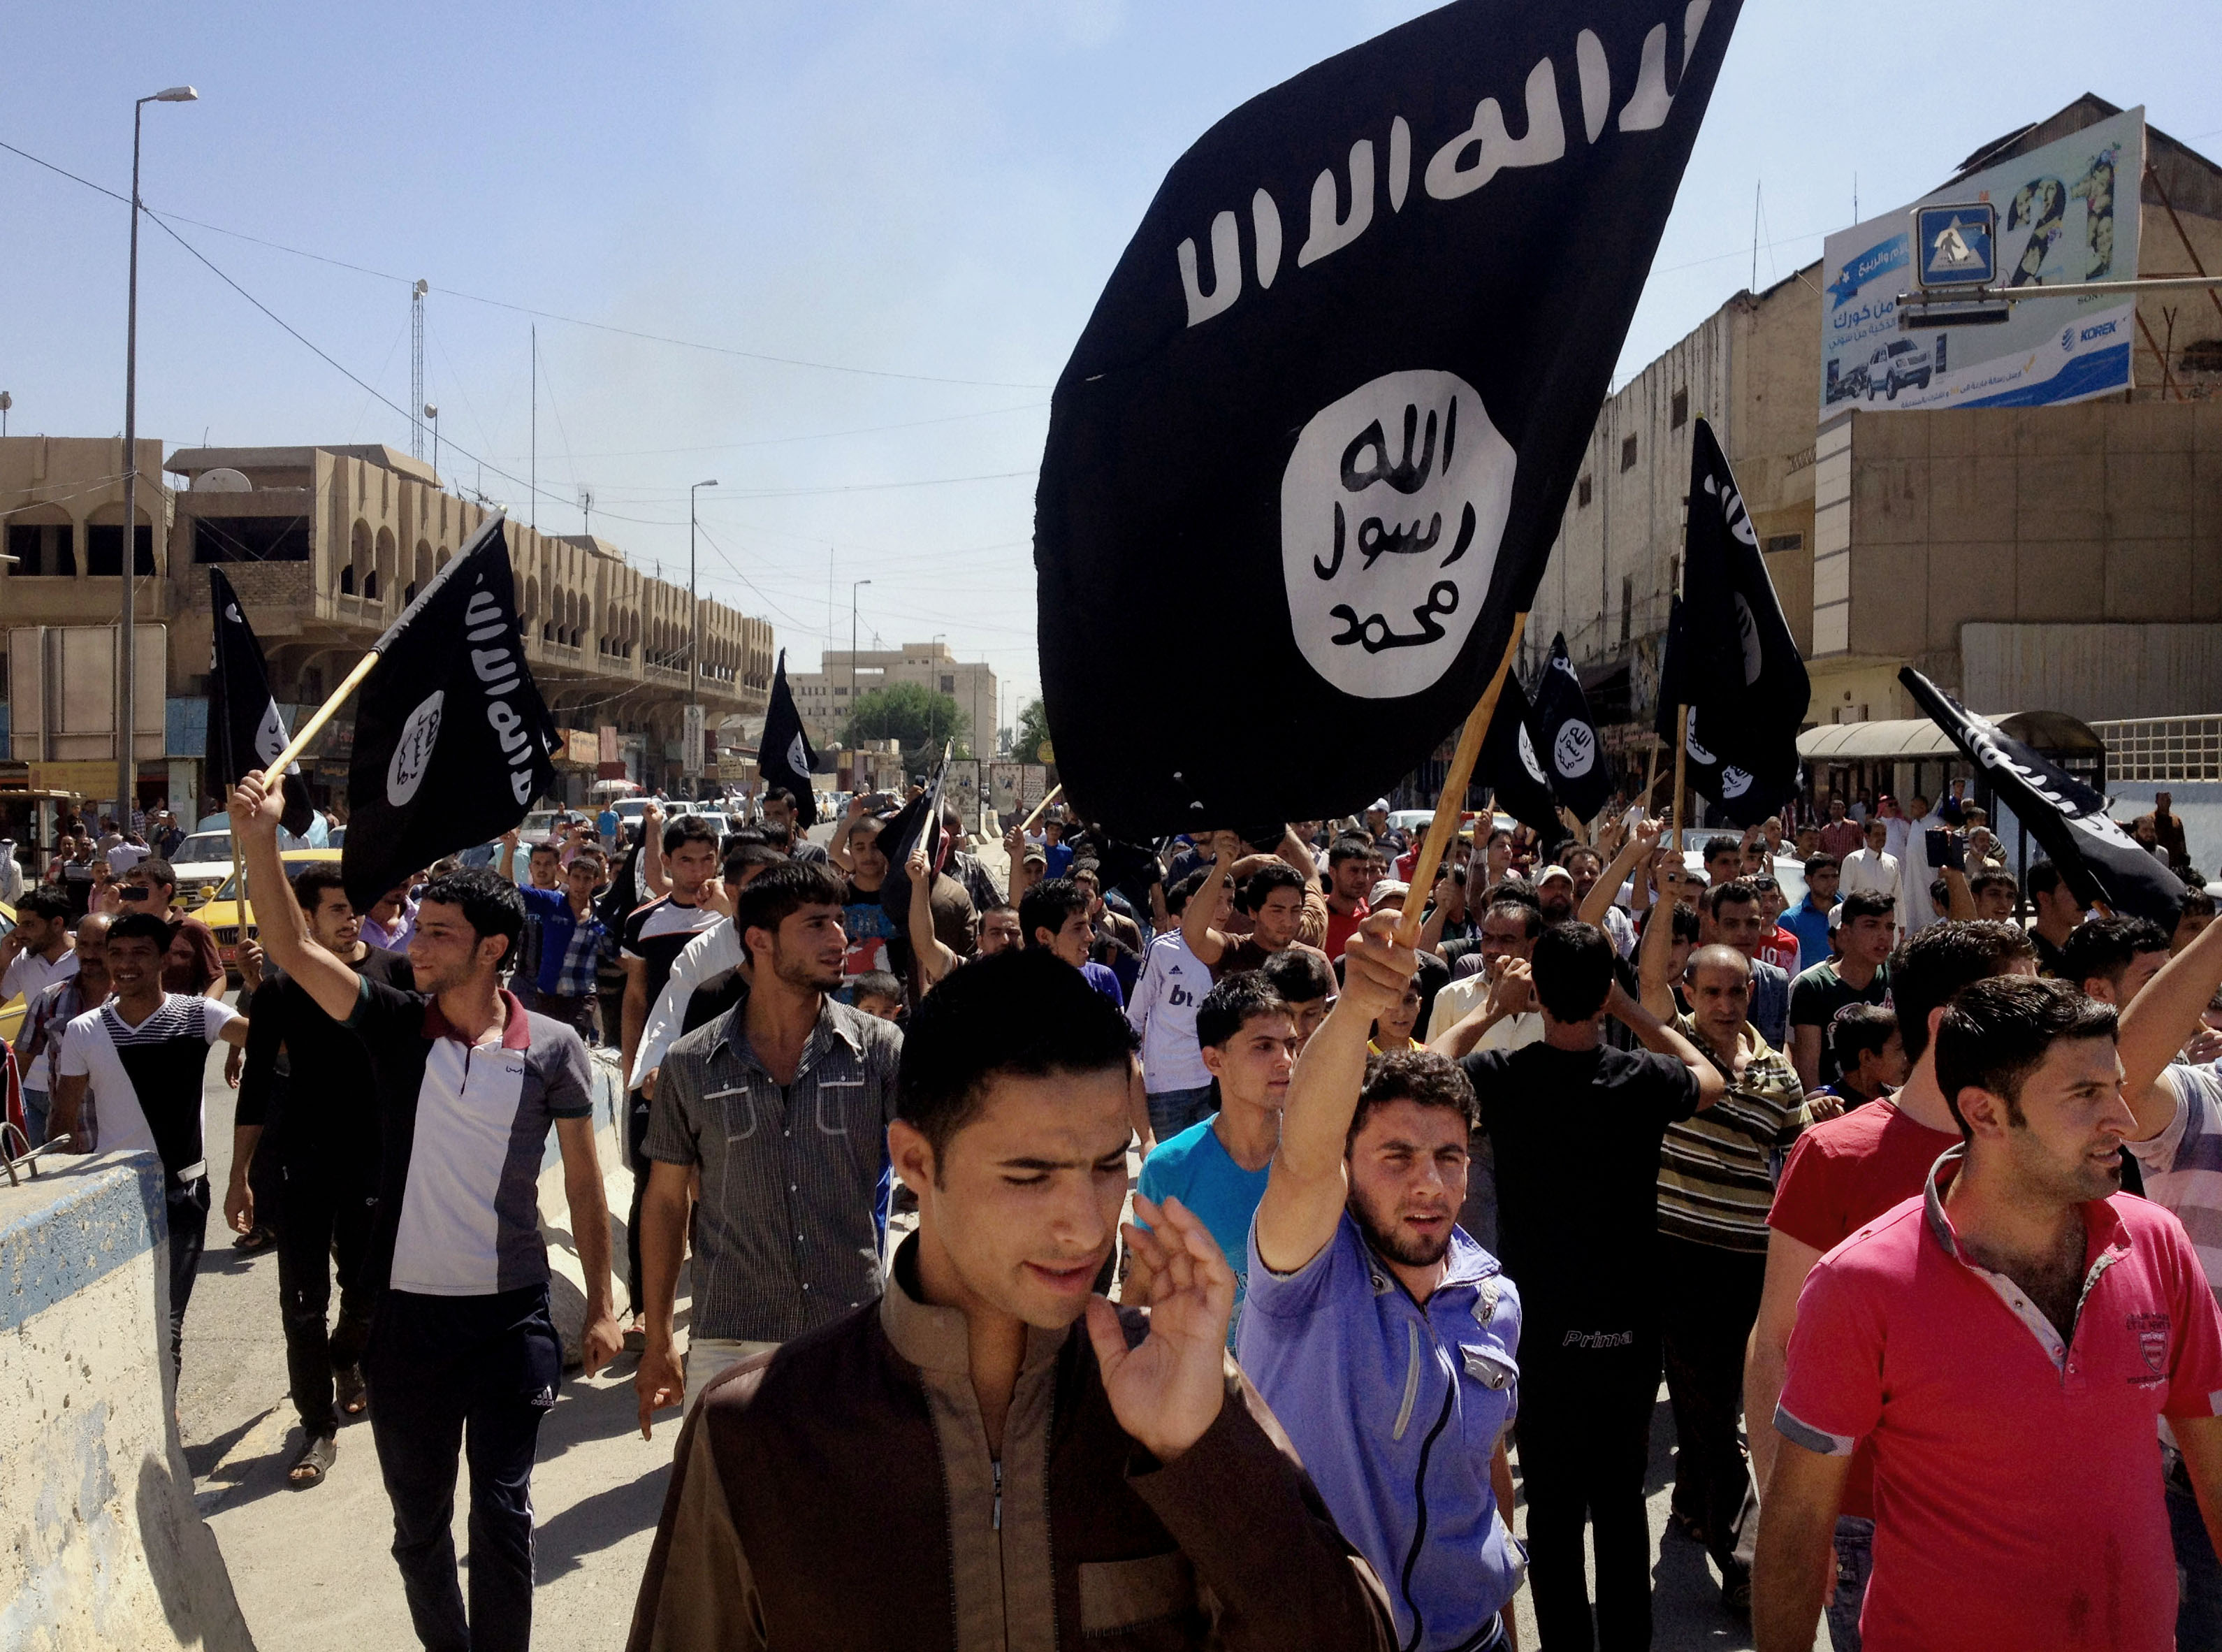 In this June 16, 2014, file photo, supporters of the Islamic State of Iraq and Greater Syria chant slogans as they carry the group's flags in Mosul, Iraq